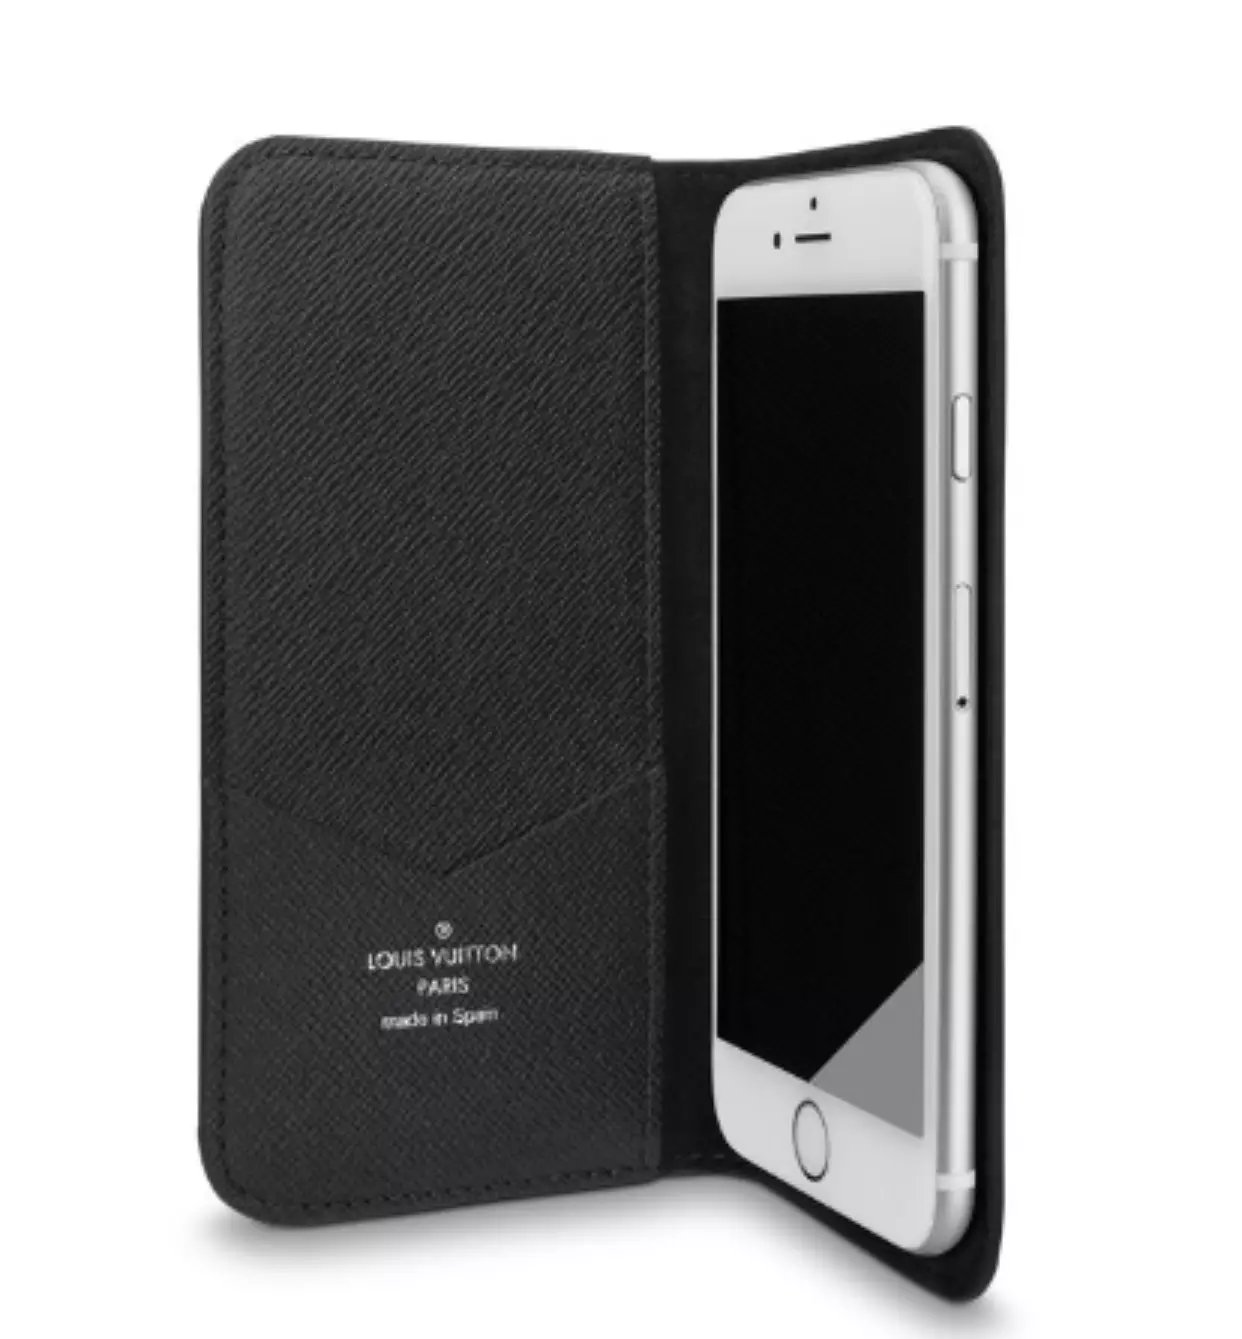 individuelle iphone hülle iphone hülle bedrucken lassen Louis Vuitton iphone7 Plus hülle lederhülle für iphone 7 Plus handy ca7 iphone 7 Plus iphone 7 Plus lederhülle schwarz schutztasche iphone 7 Plus handy zubehör iphone 7 Plus suche iphone 7 Plus